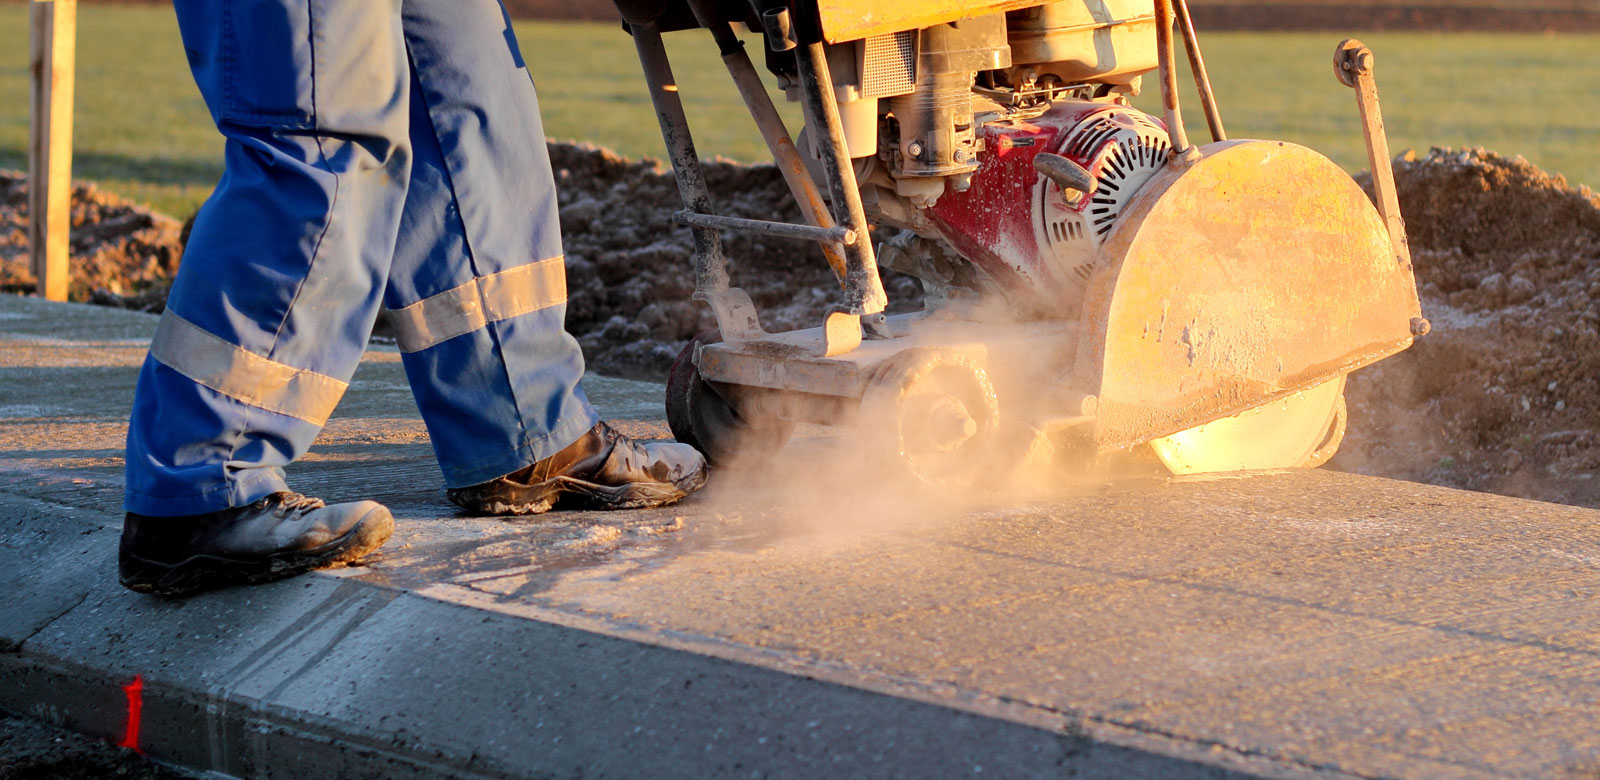 CW Concrete concrete cutting